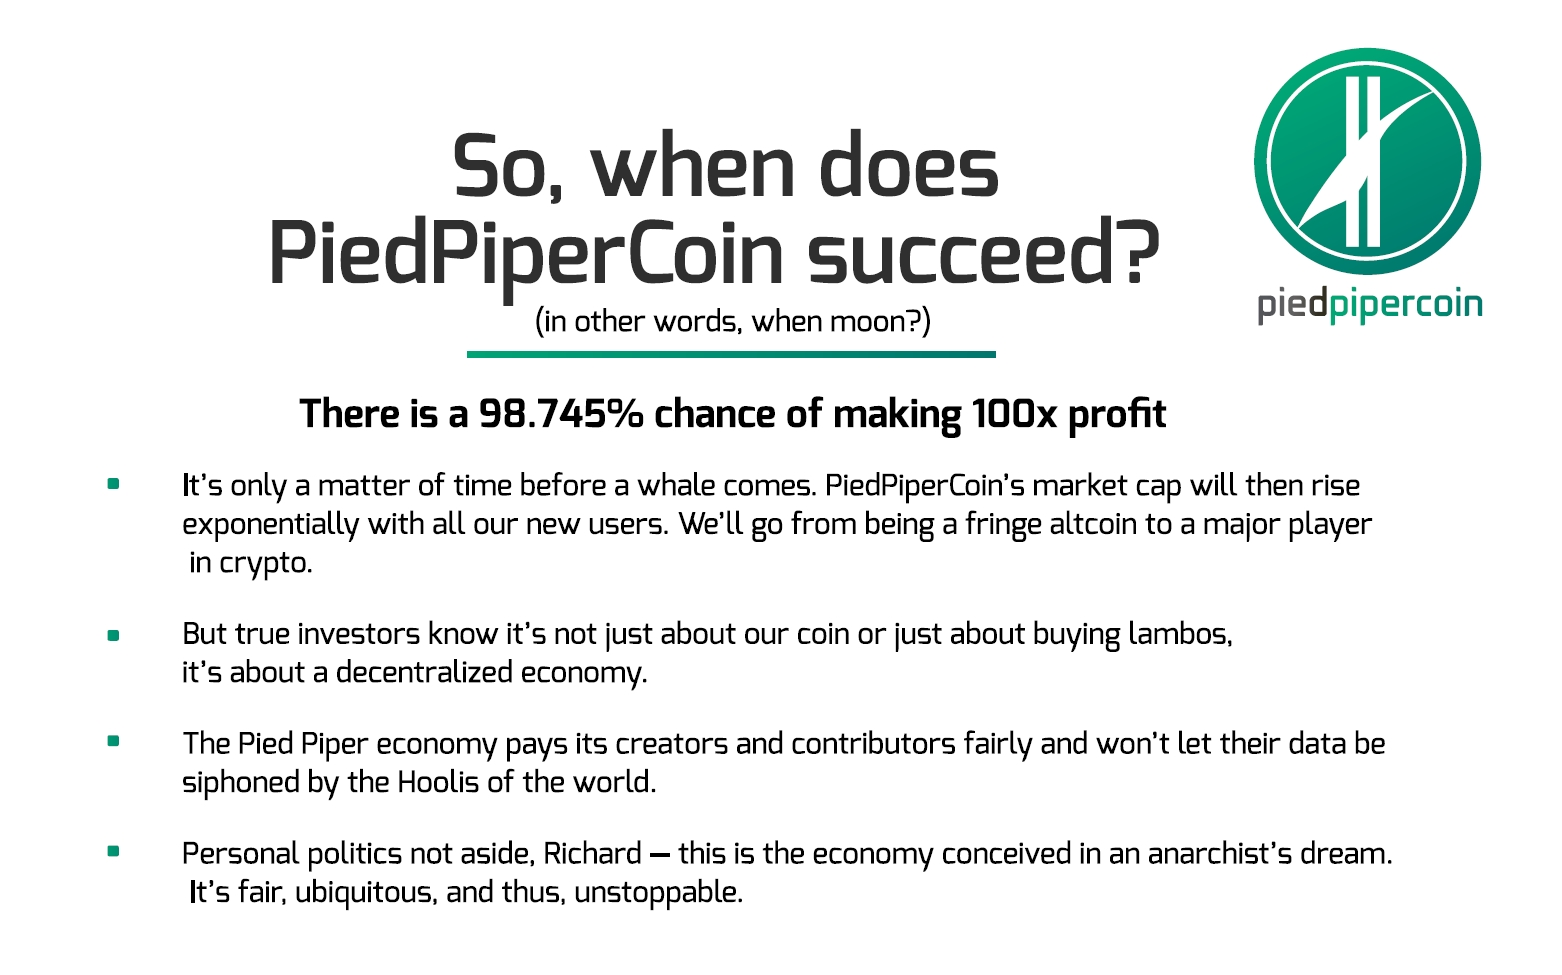 Quelle: http://www.piedpiper.com/app/themes/pied-piper/dist/images/Gilfoyle_s_Crypto_PowerPoint_-_Digital_Edition.pdf